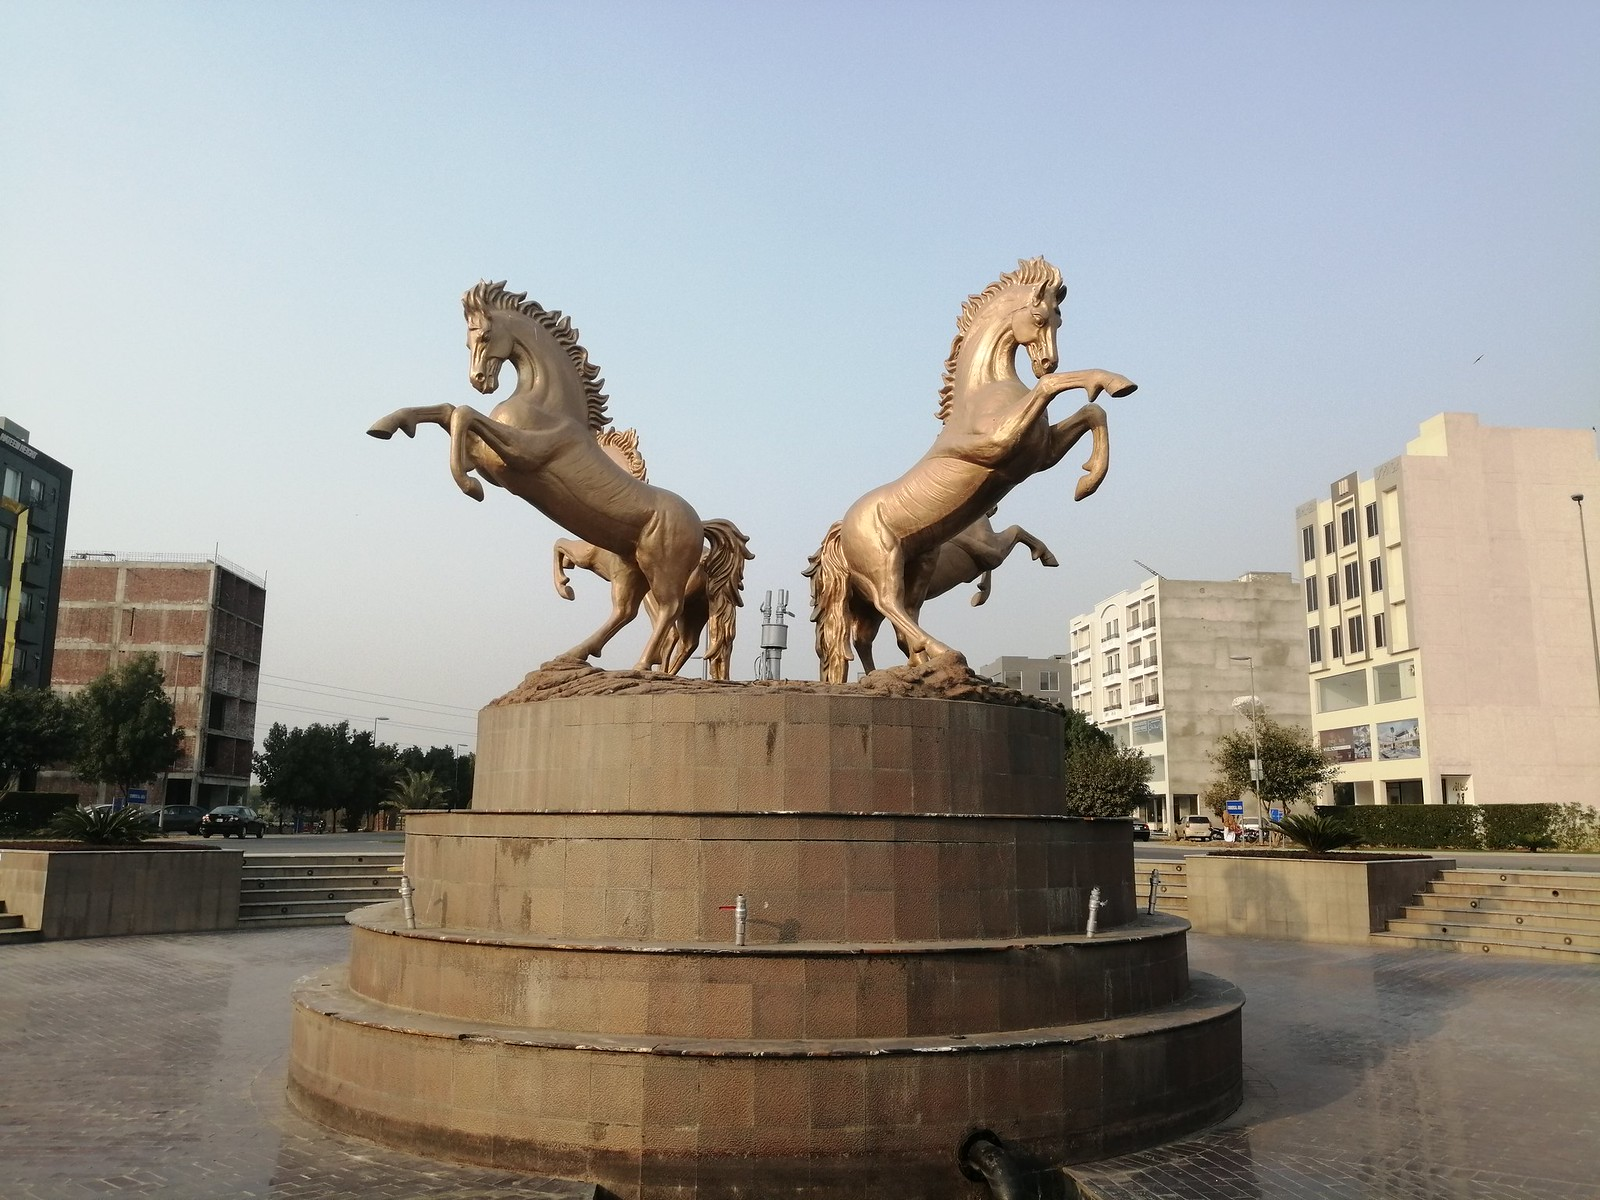 Picture of Horses Statue with Auto Mode on Huawei Y9 2019